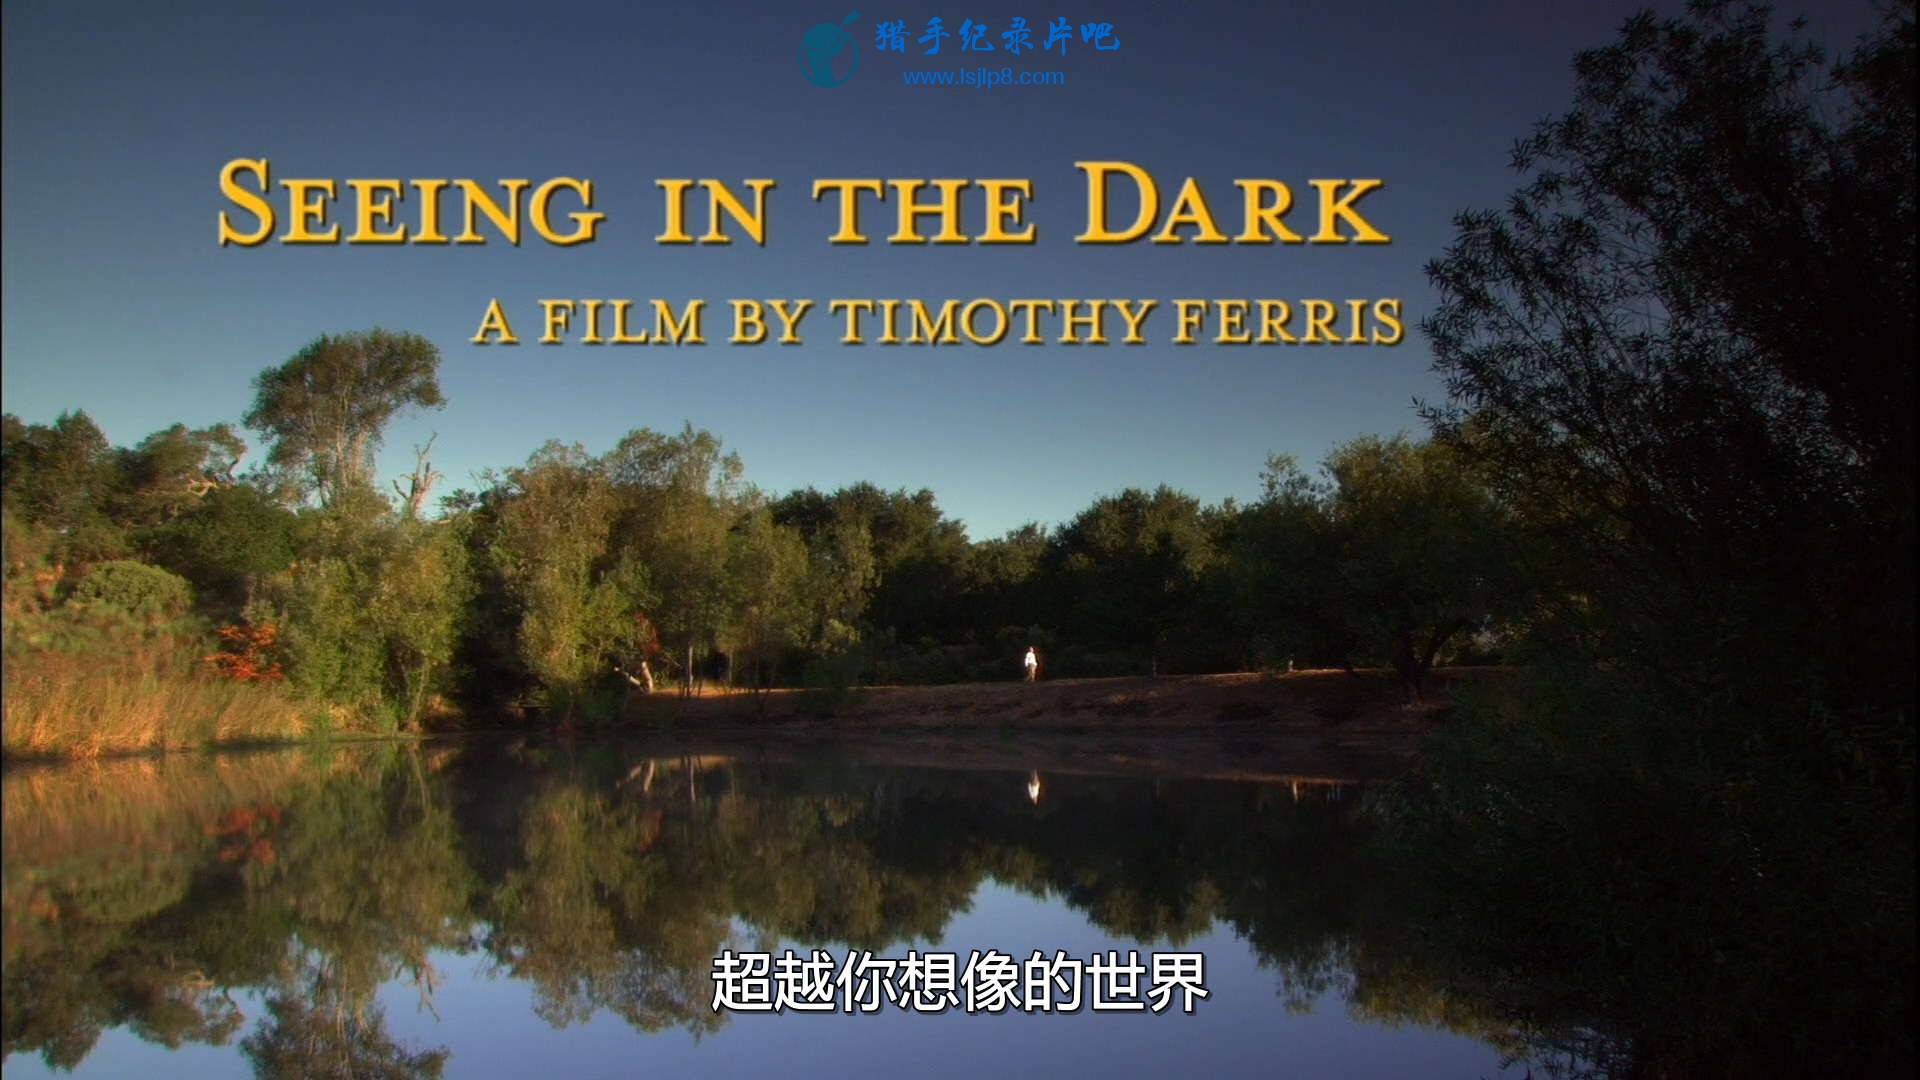 PBS.Seeing.in.the.Dark.1080p.BDRip.x264.AAC[eztv].mkv_20200605_121940.985_看图王.jpg